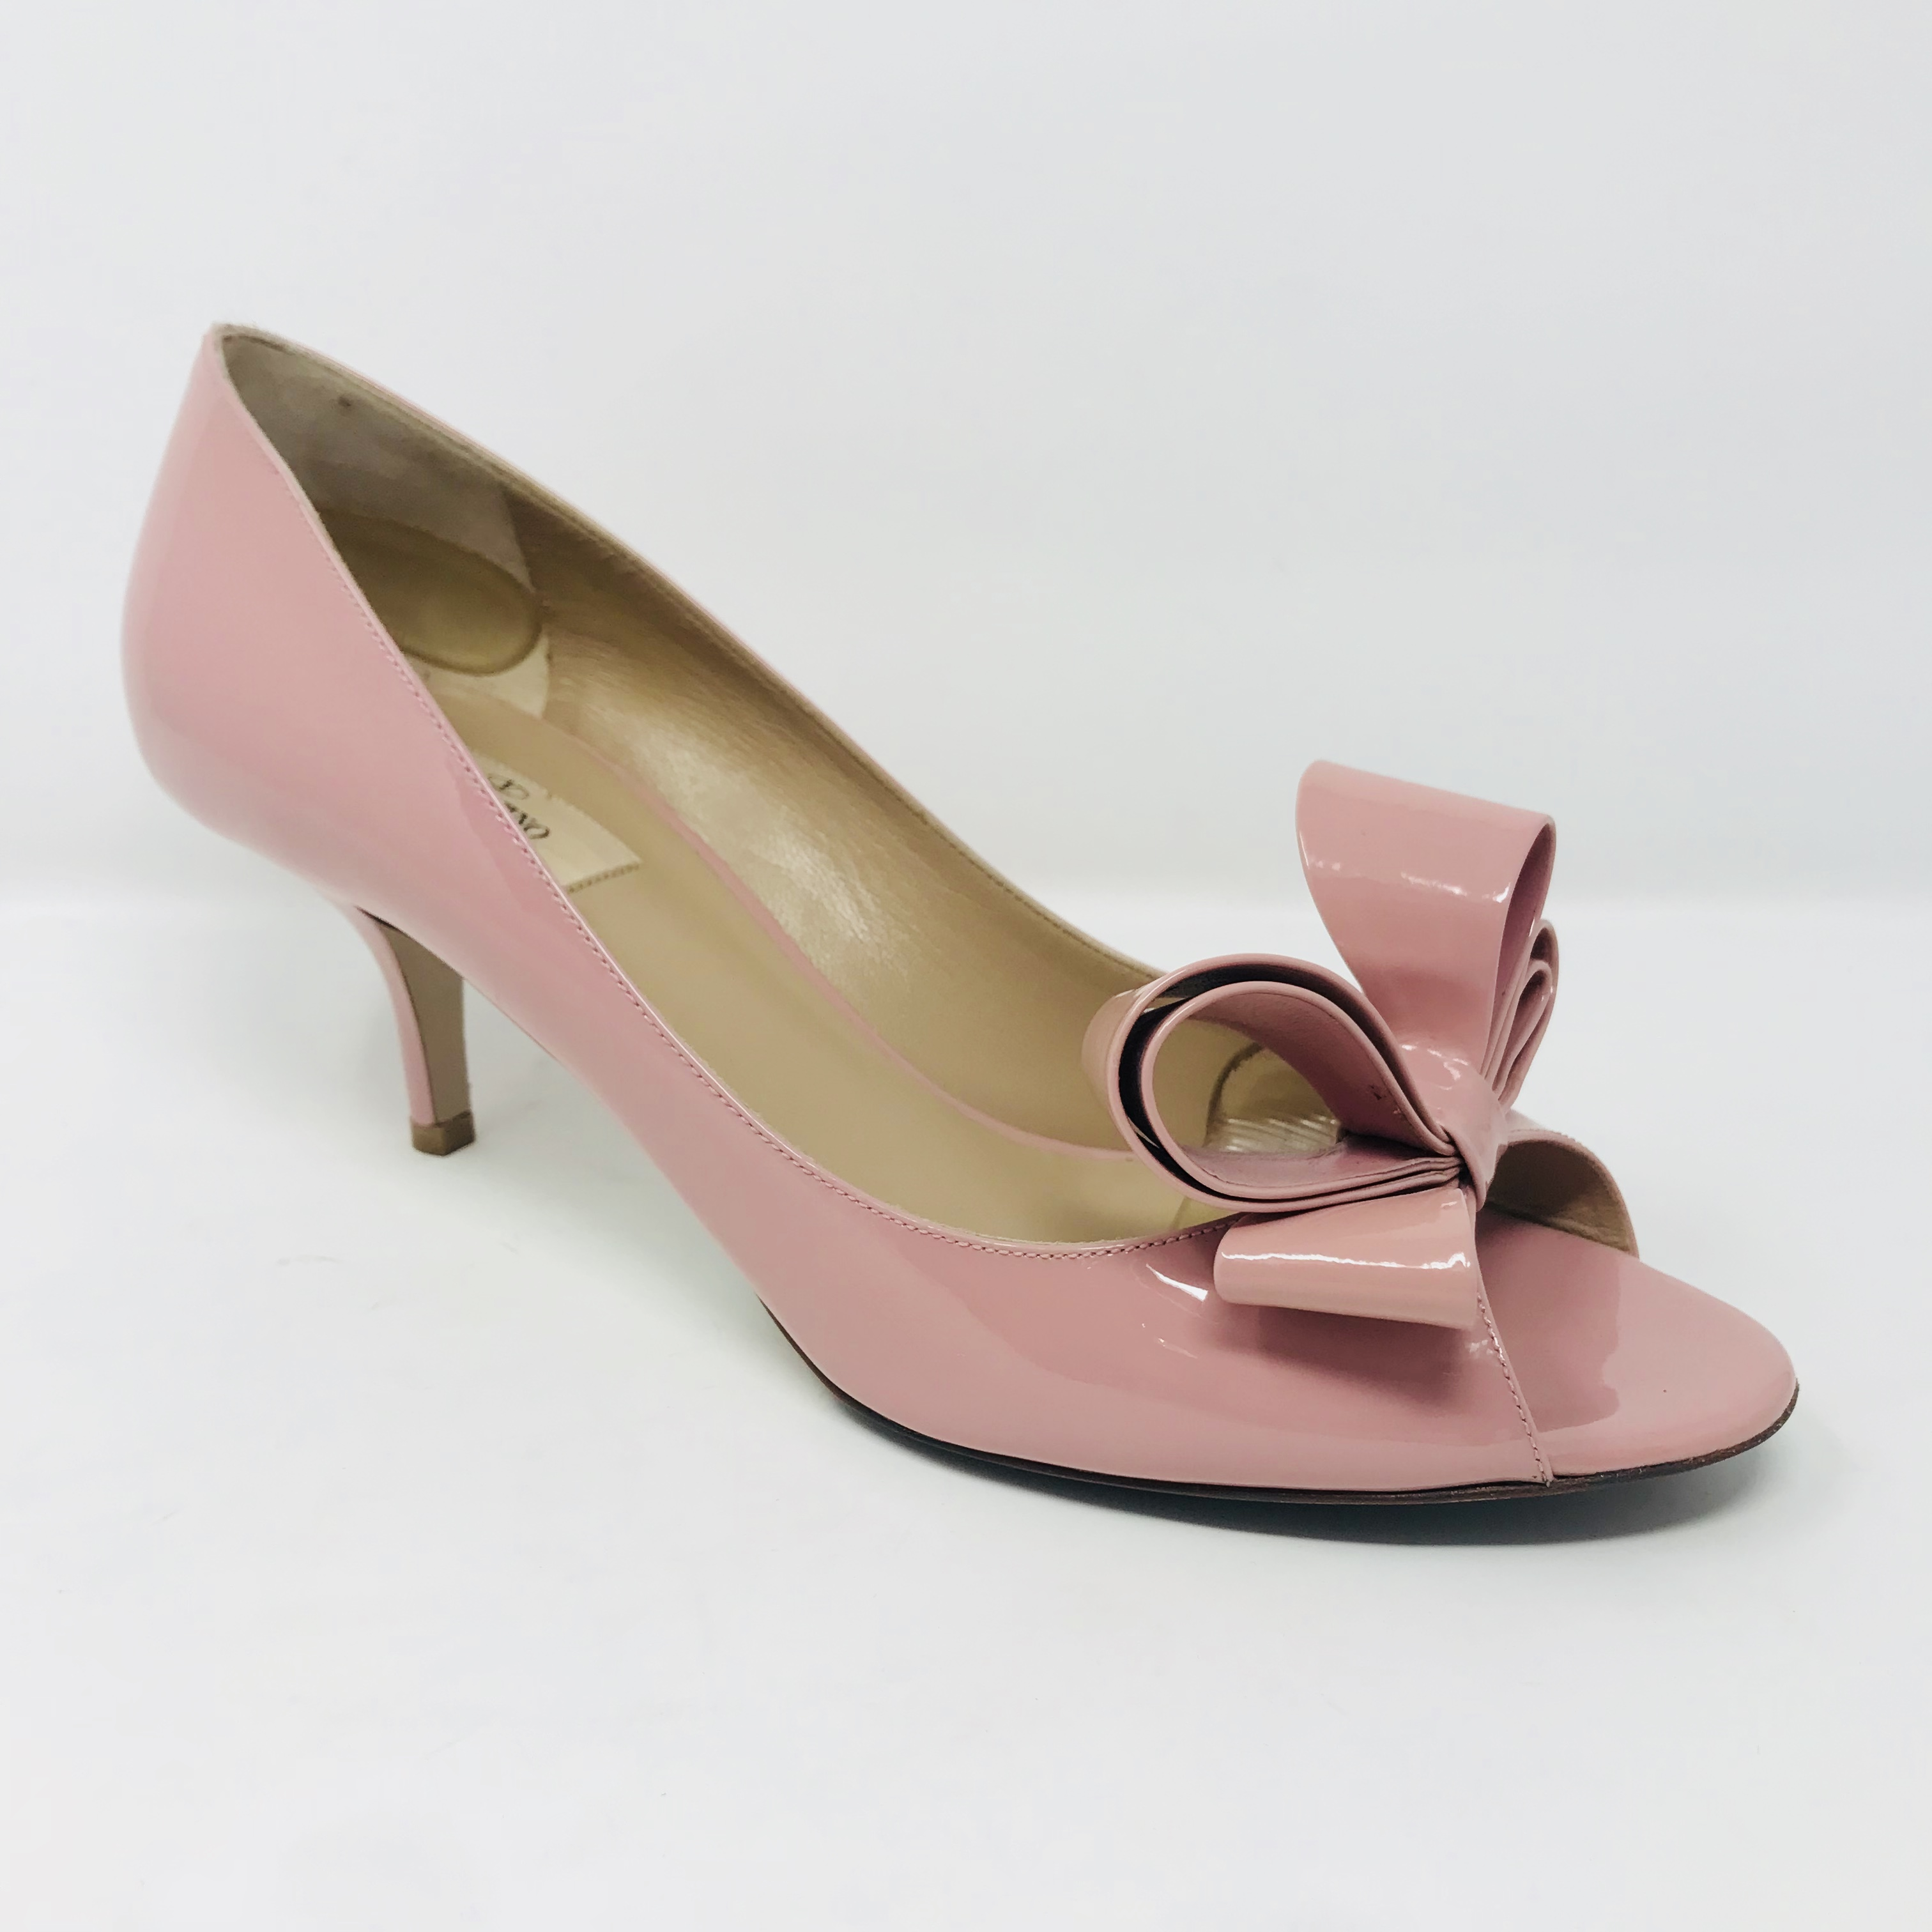 Pink Shoes Price: $257.99